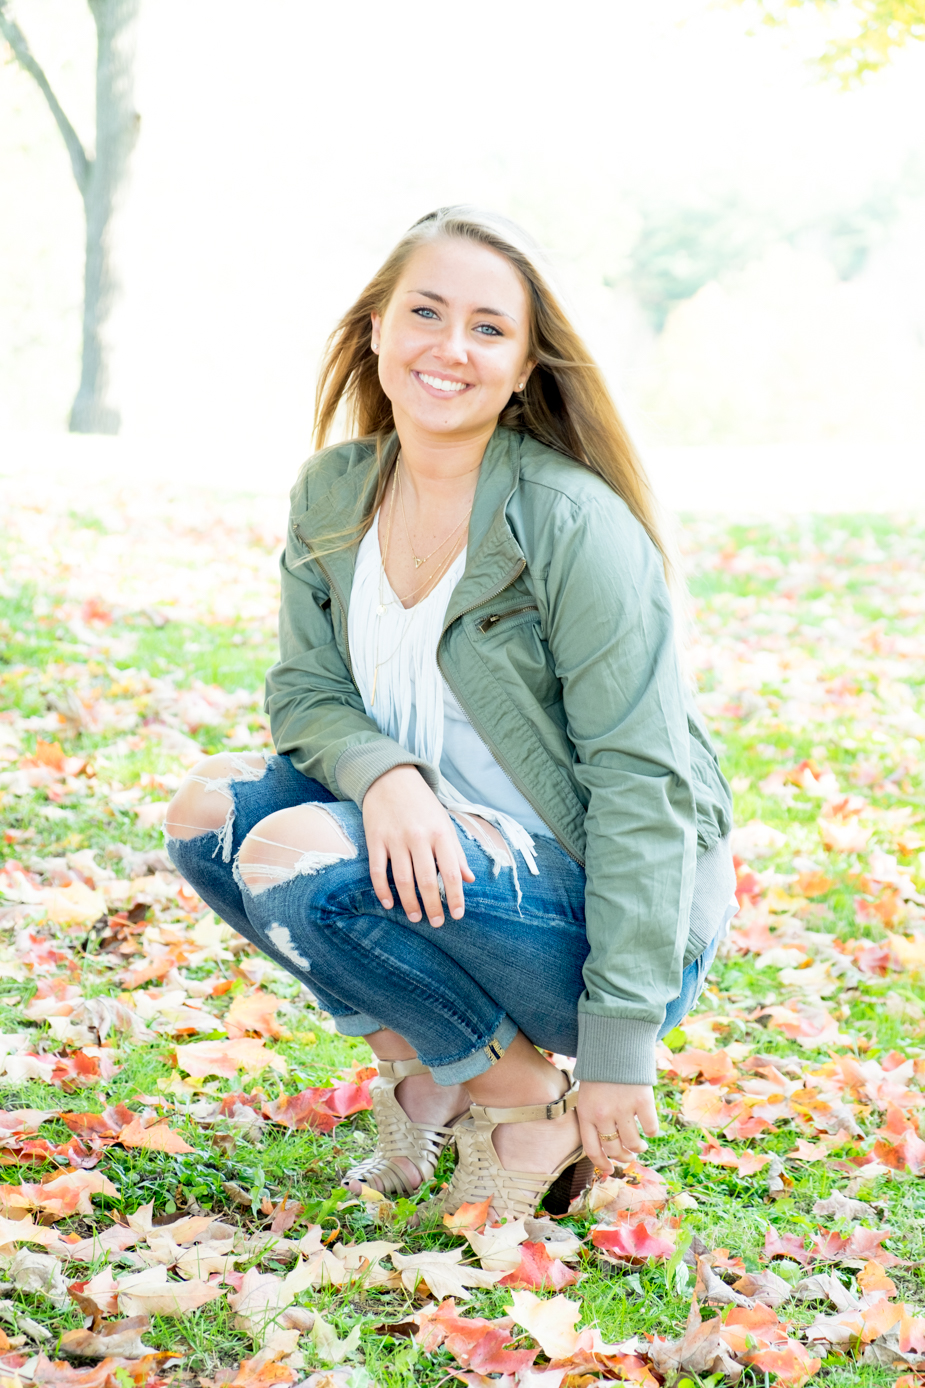 Alexa Conley - Joel Echelberger Photography (7 of 7)